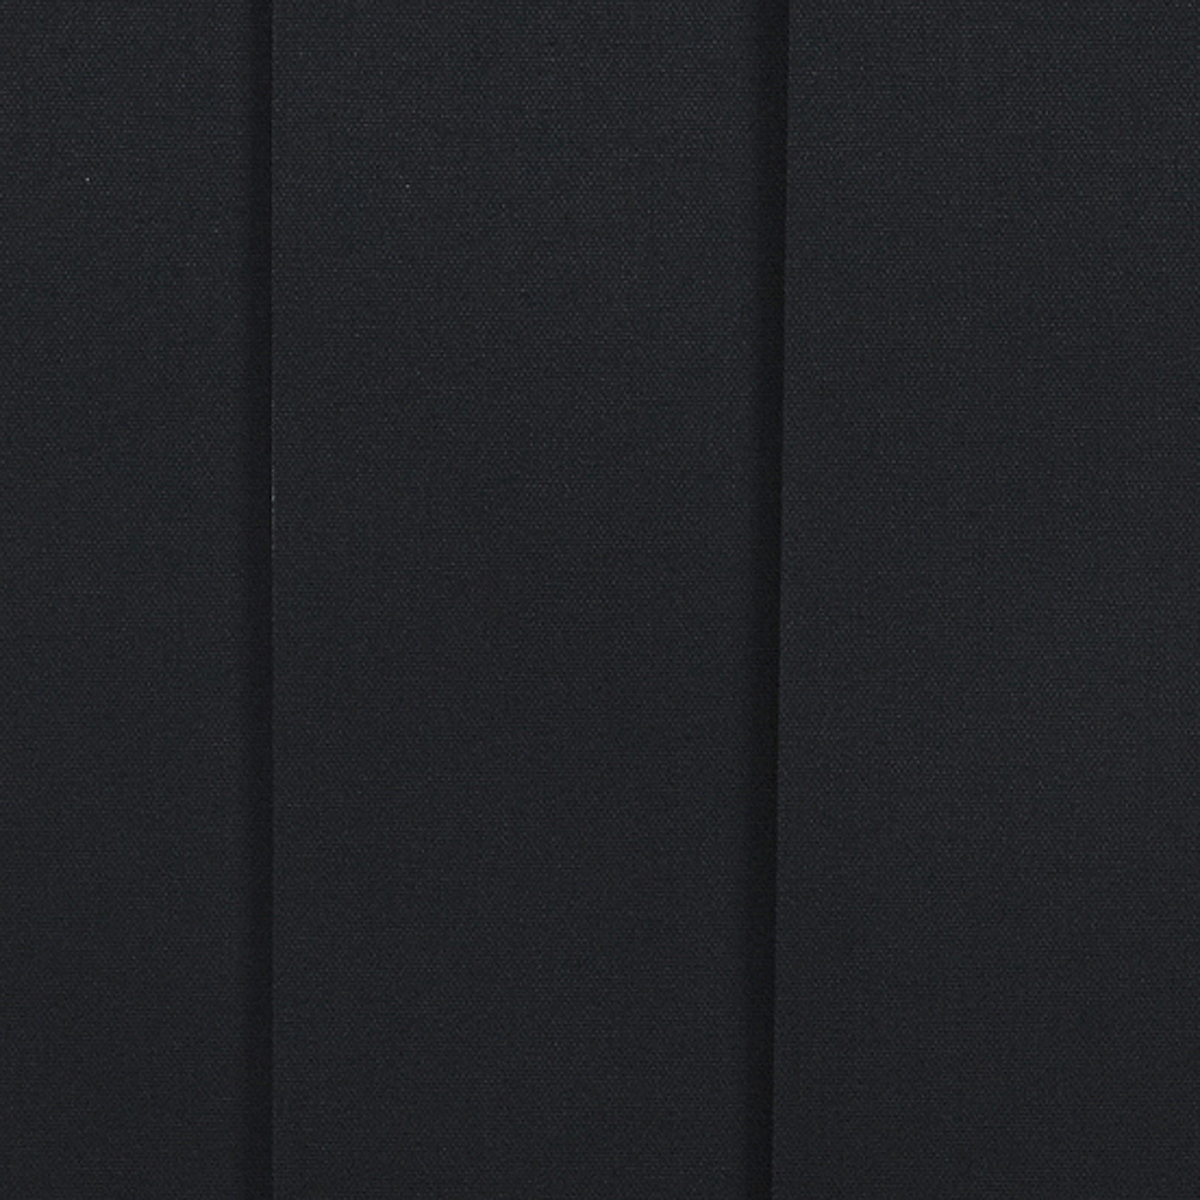 Lamellväv Carina color blackout 7917